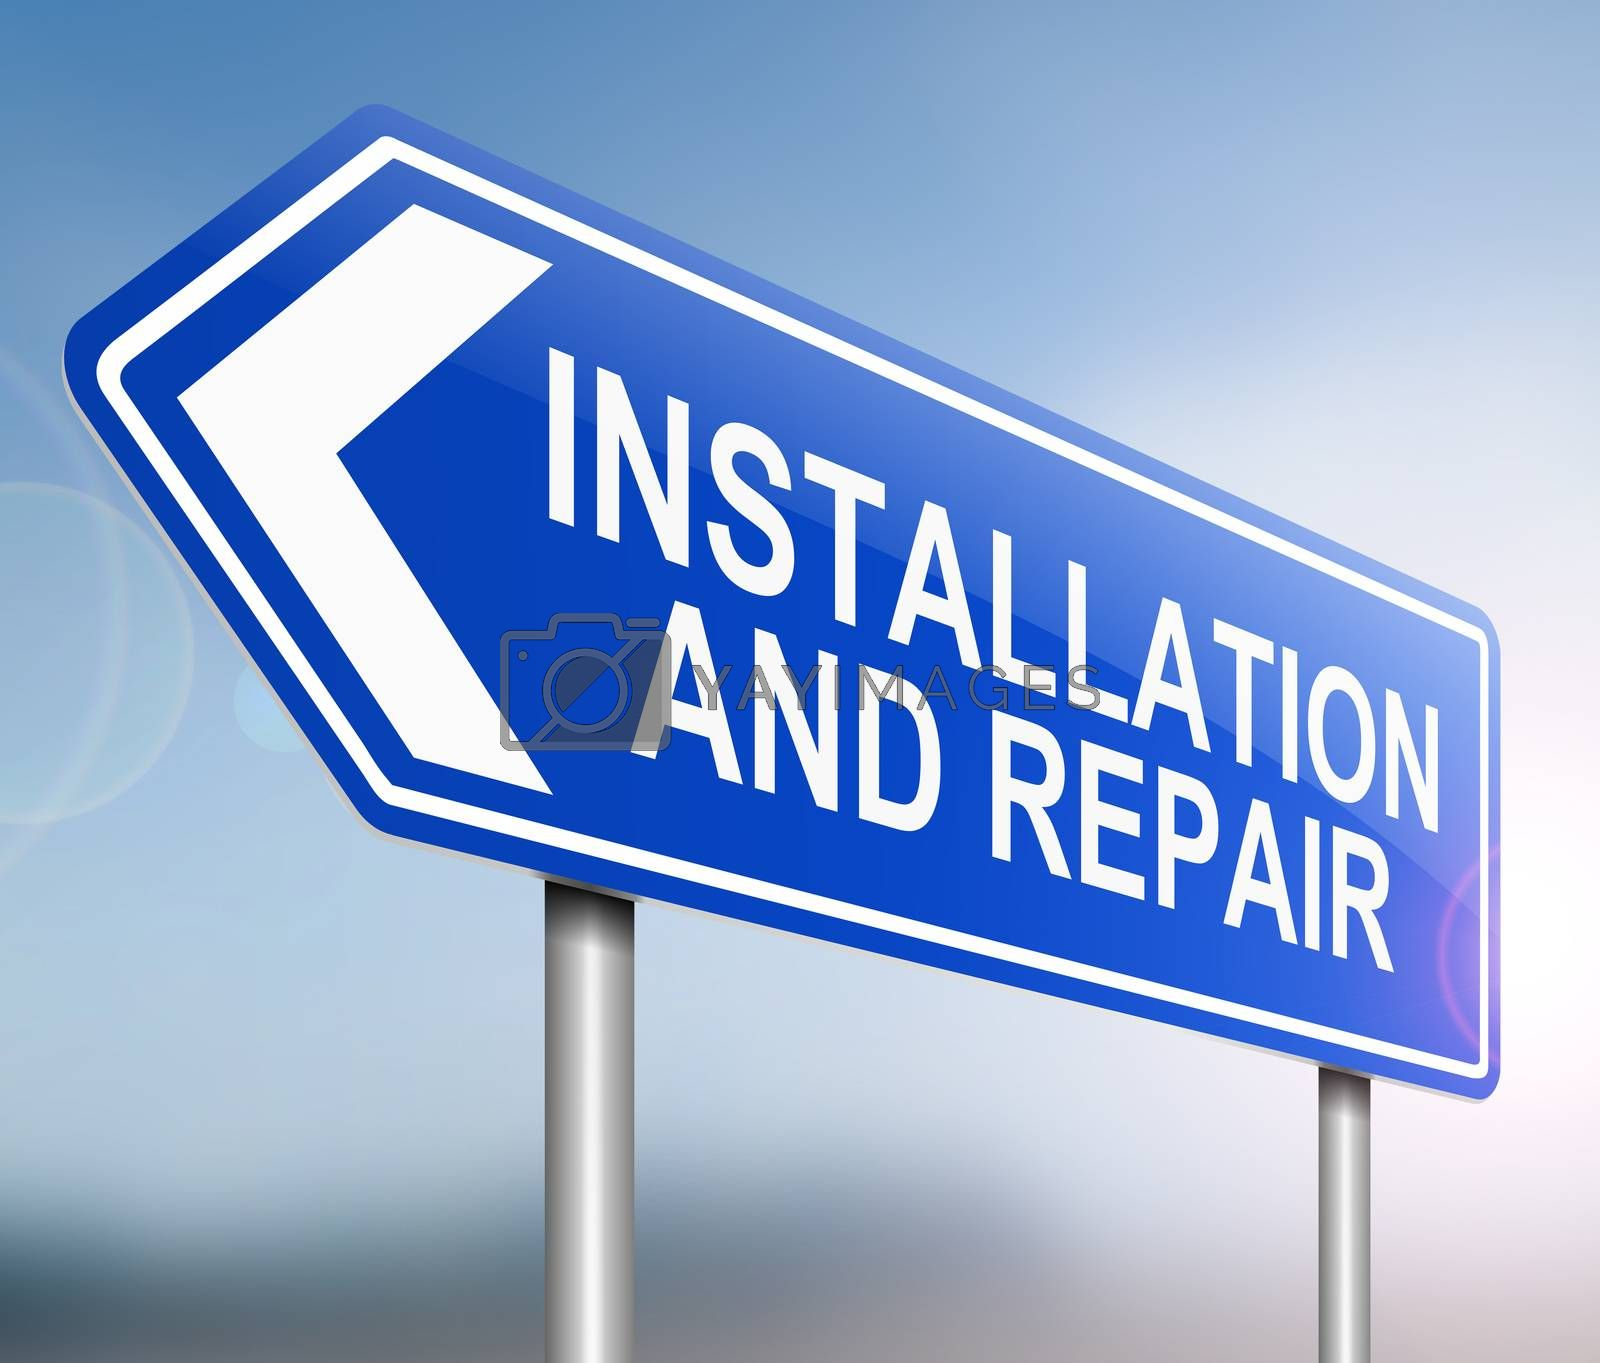 Illustration depicting a sign with an installation and repair concept.